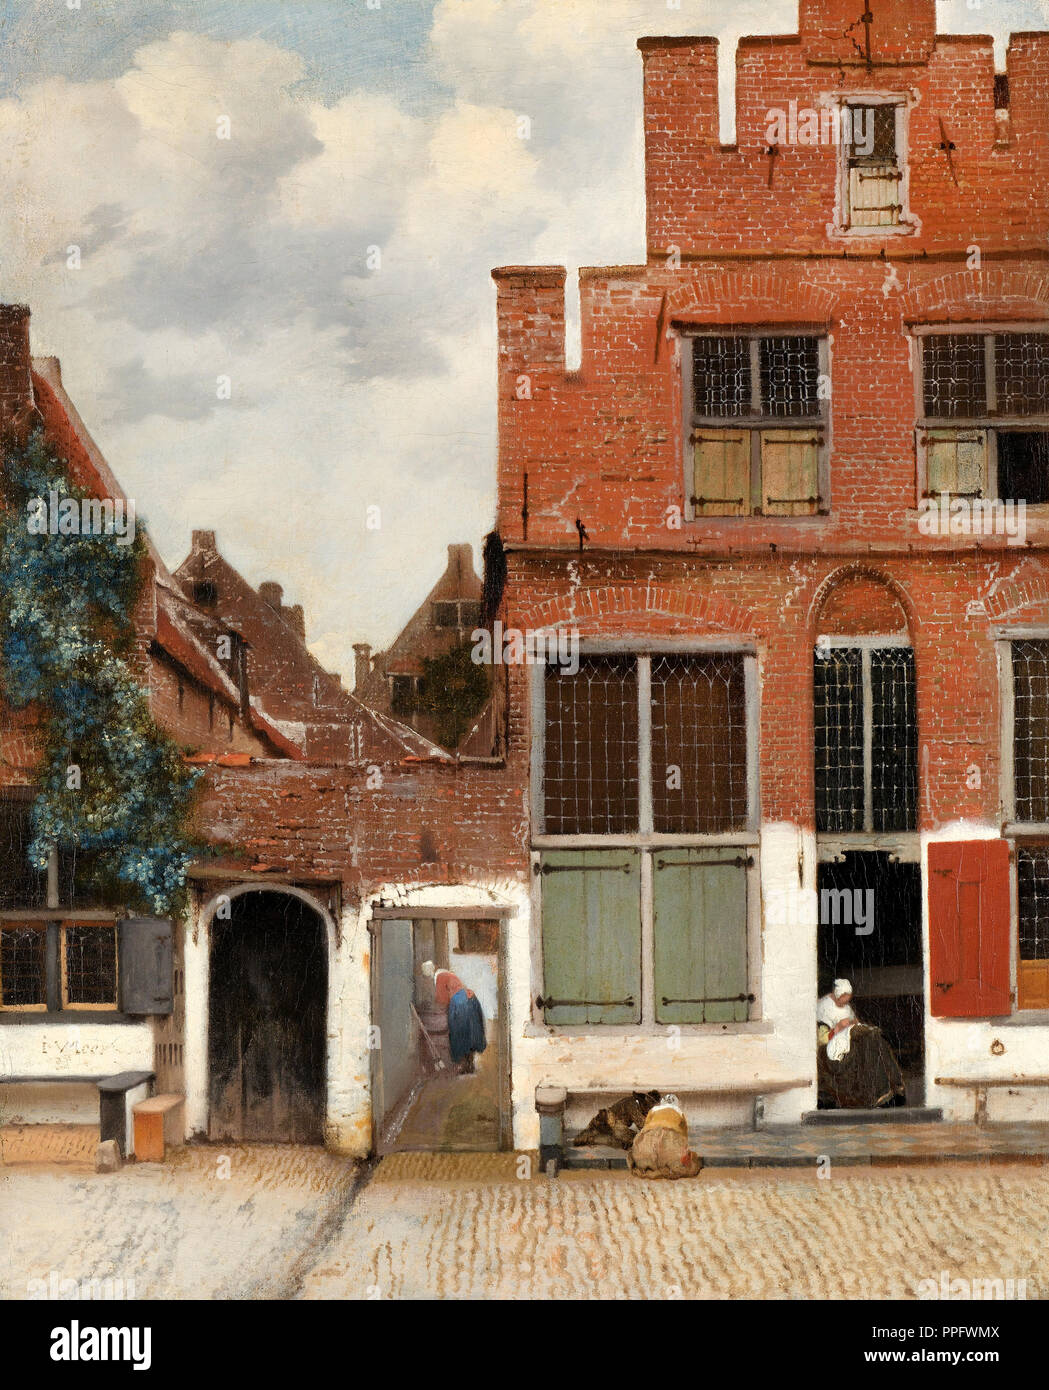 Johannes Vermeer - View of Houses in Delft, Known as 'The little Street'. Circa 1658. Oil on canvas. Rijksmuseum Amsterdam, Netherlands. - Stock Image